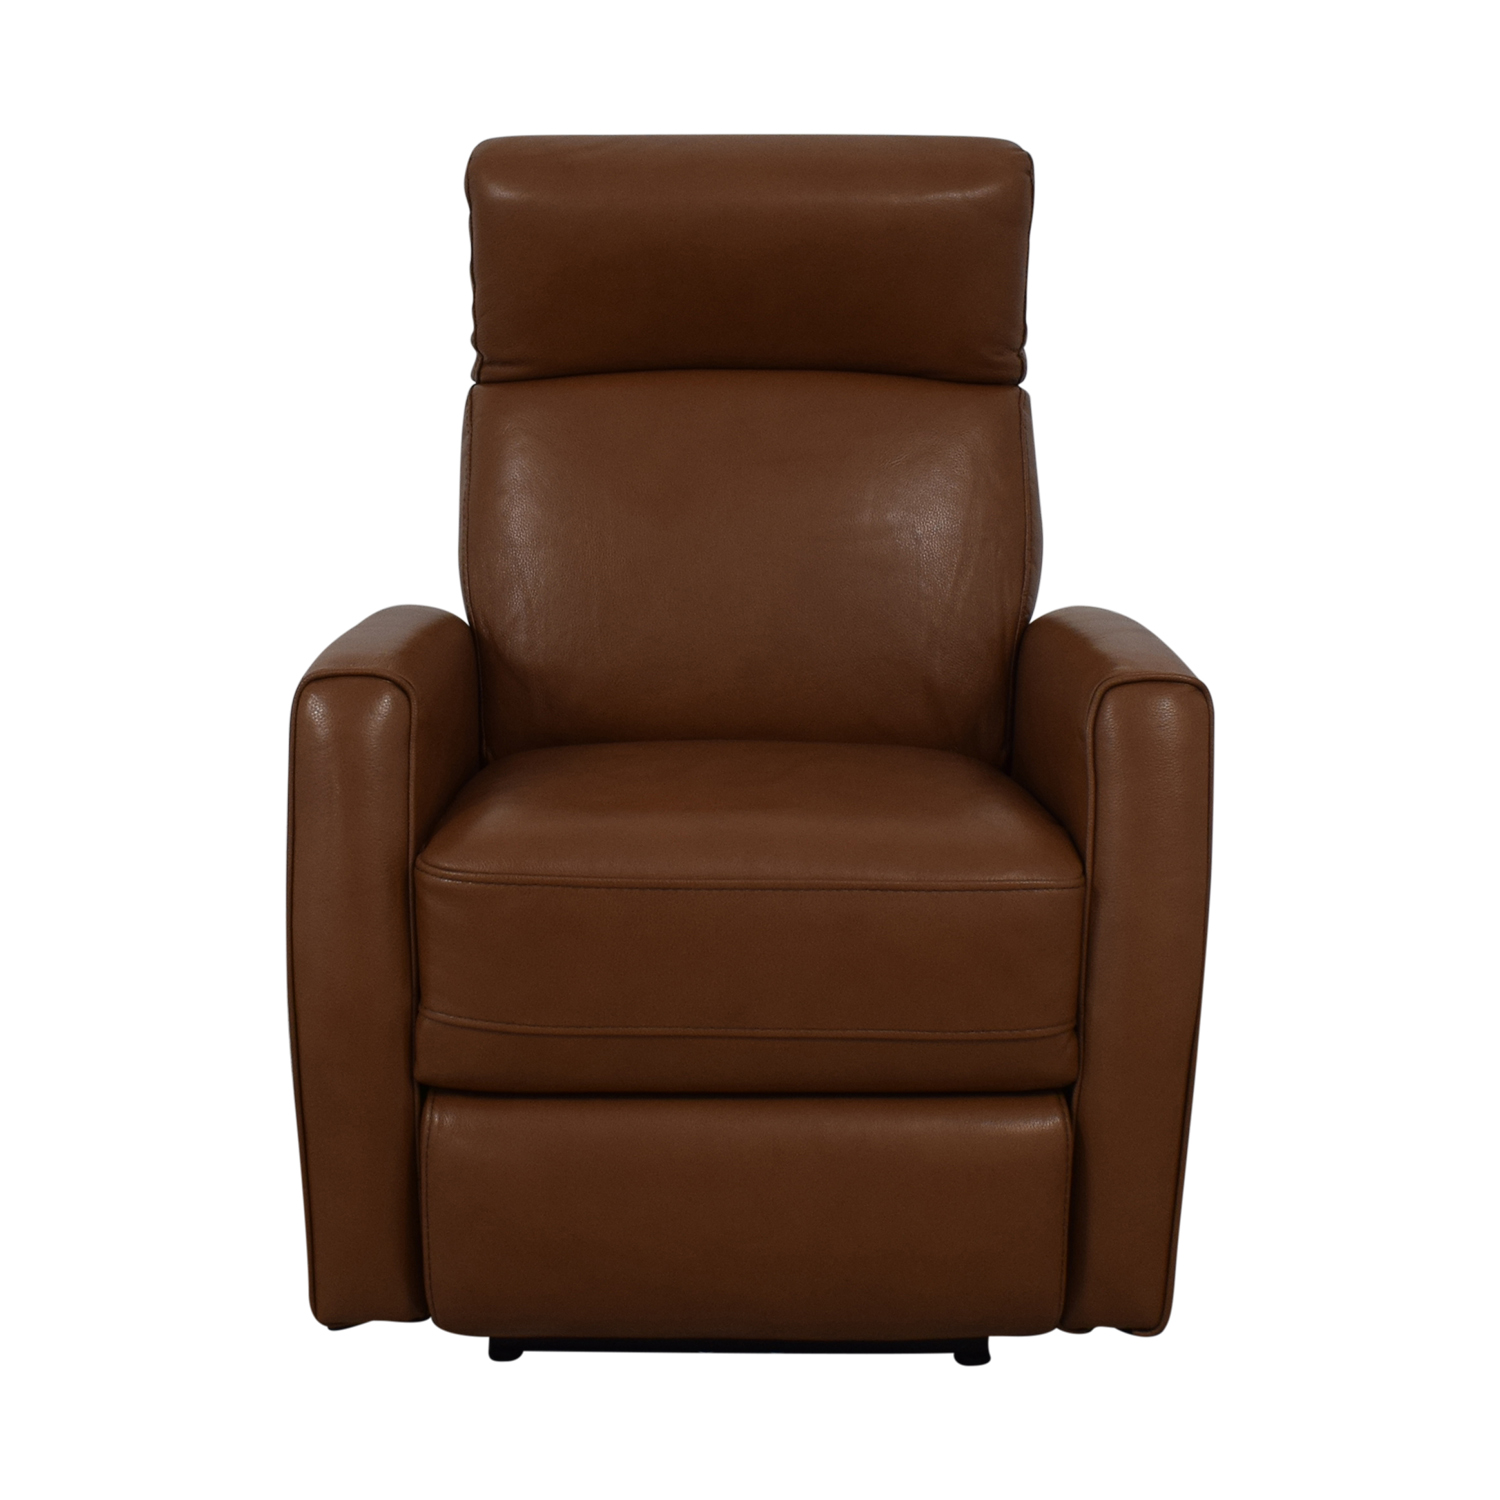 Macy's Macy's Power Reclining Armchair discount